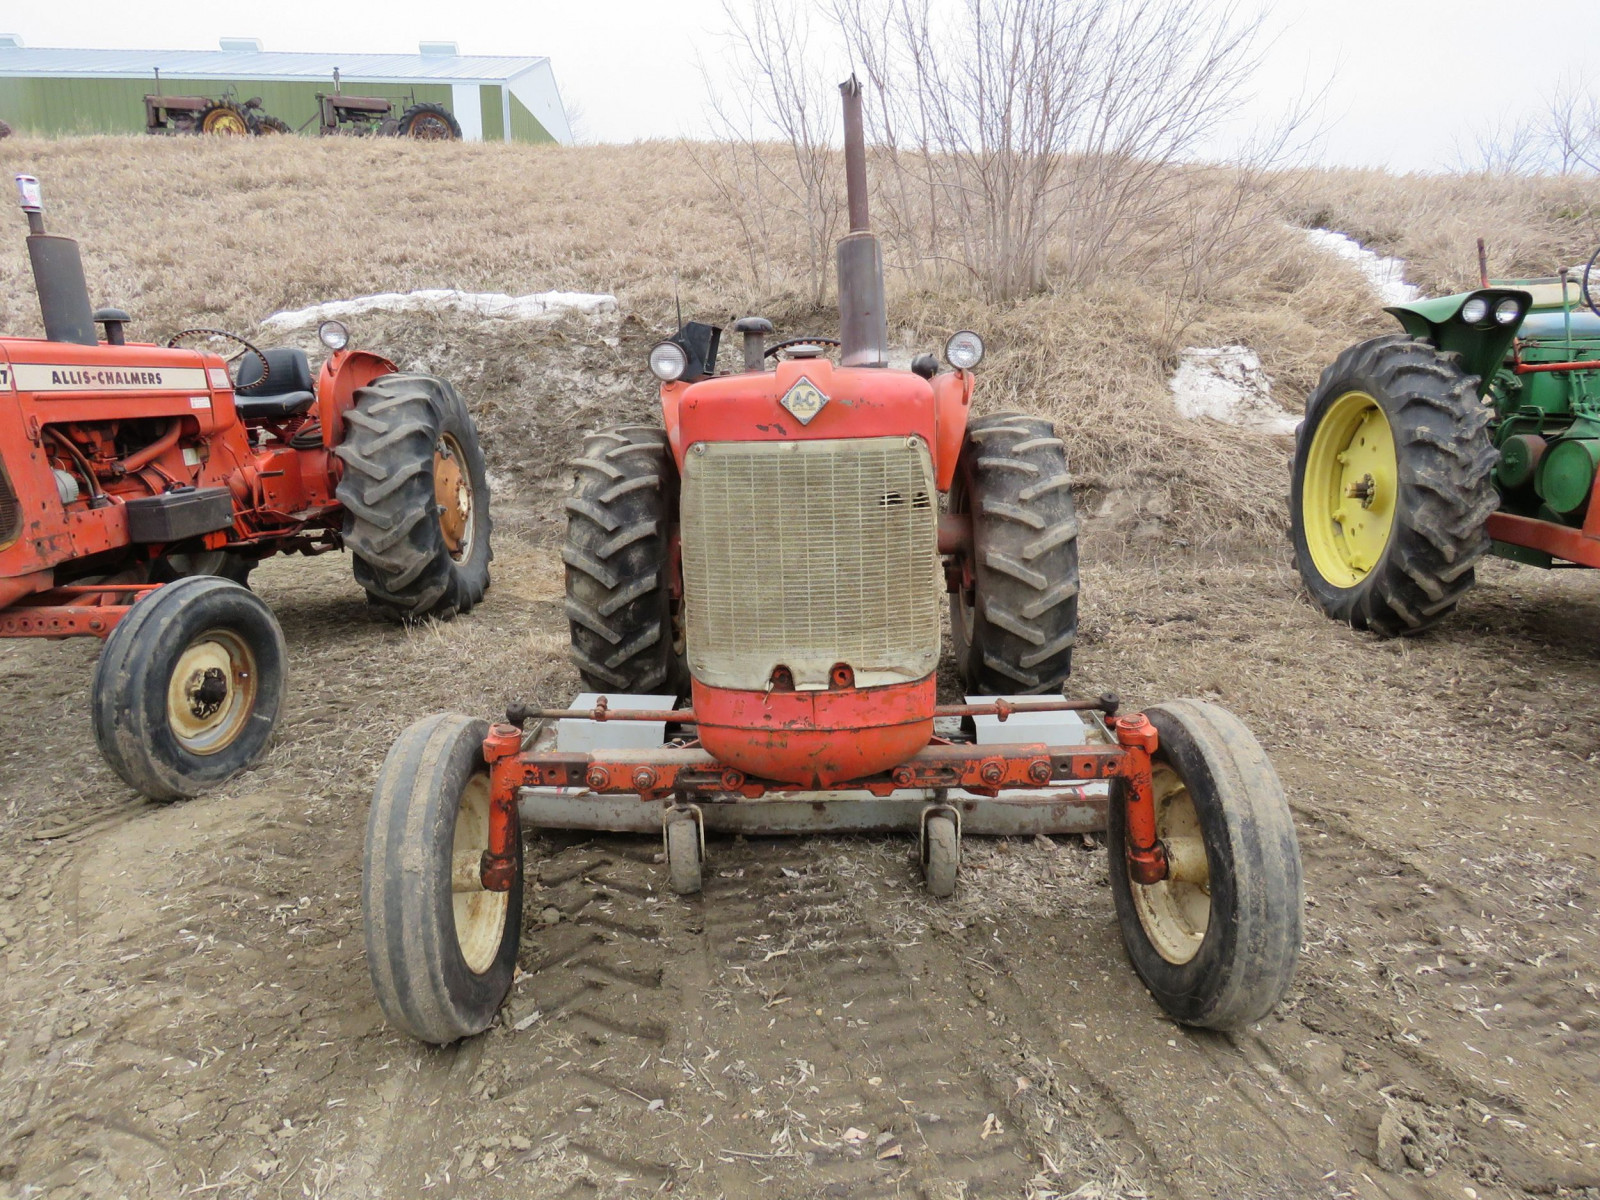 Allis Chalmers D15 with Mower - Image 2